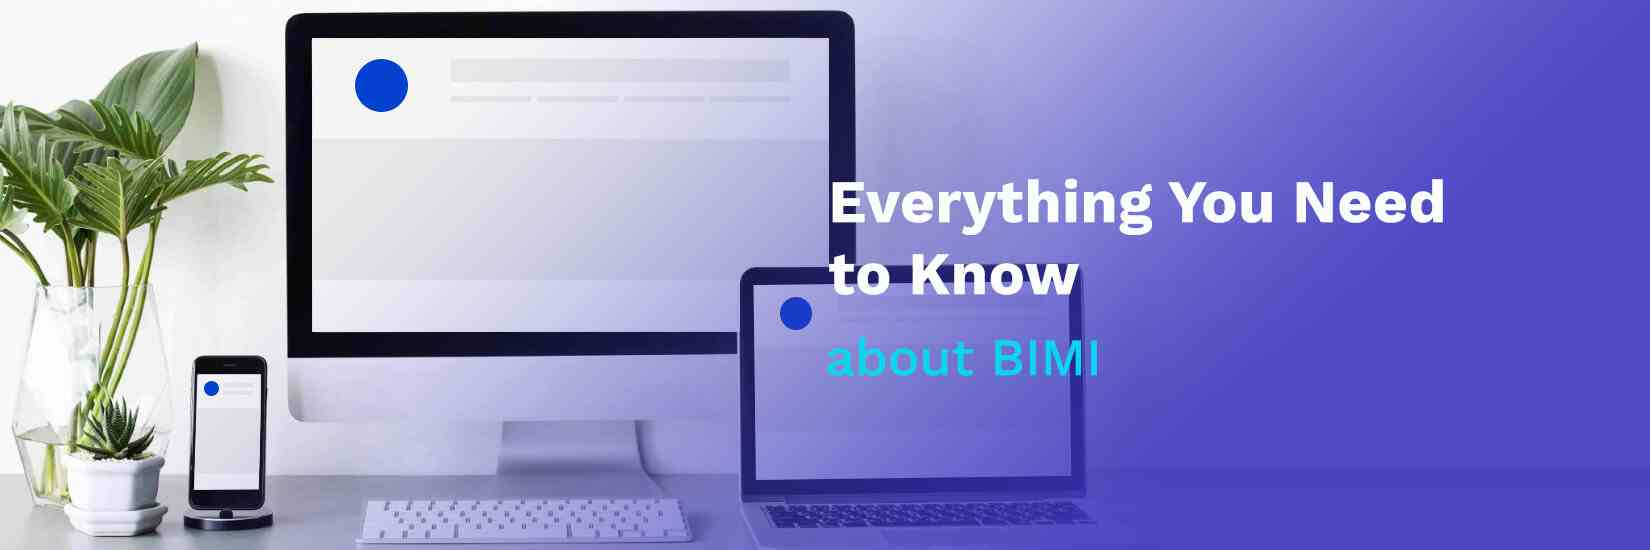 How to Use BIMI for Increasing Your Brand Recognition and Deliverability